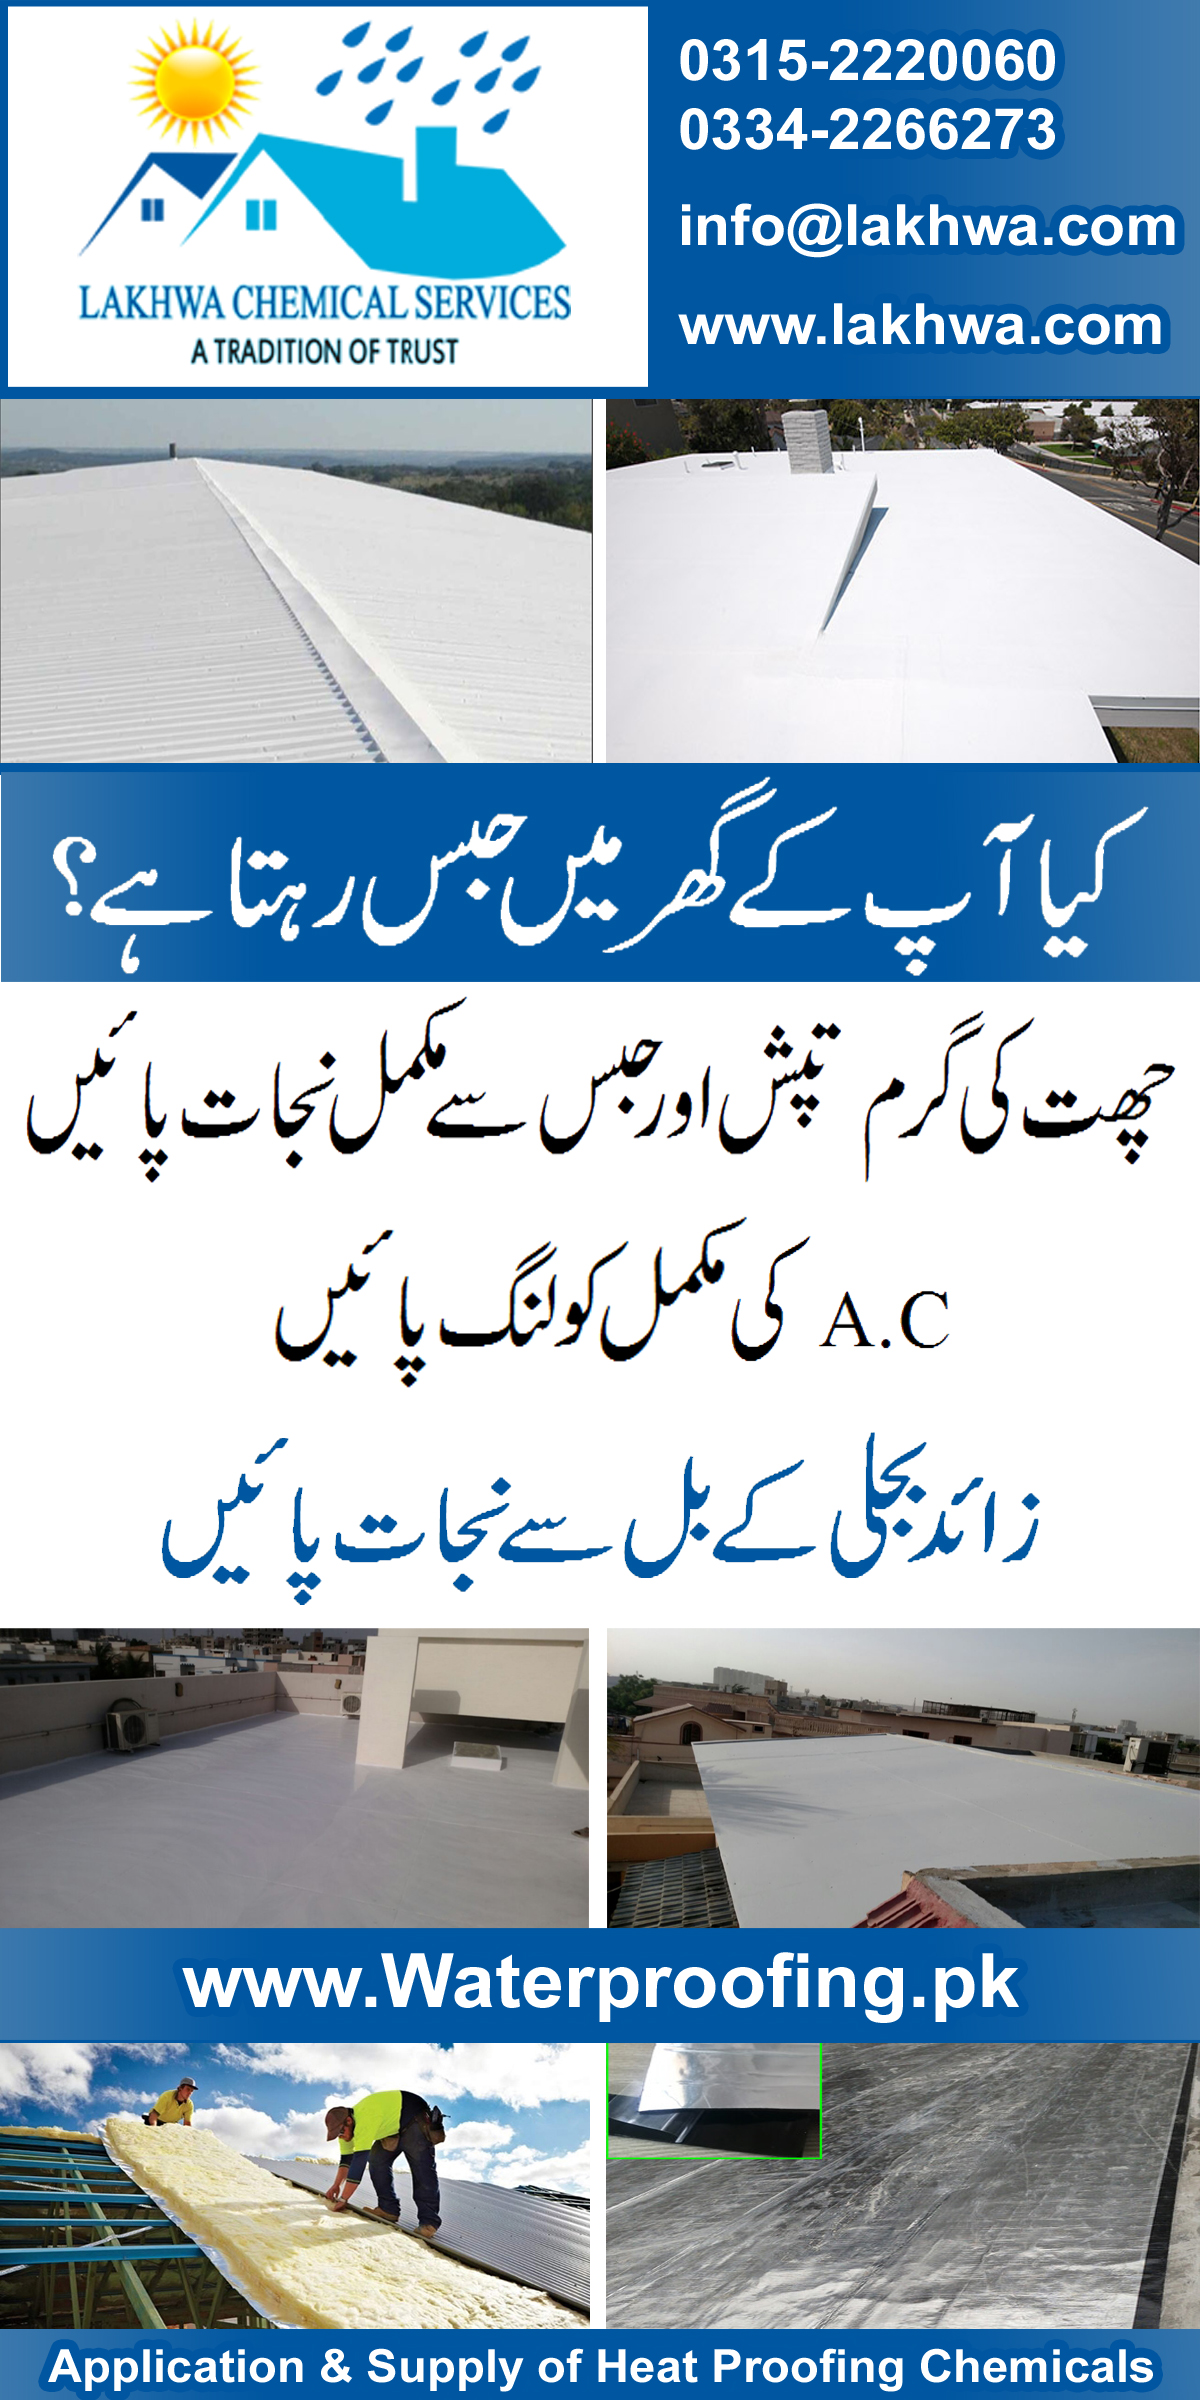 Heat Proofing and Construction Chemicals Company in Pakistan | construction chemicals company in karachi | lakhwa chemical services